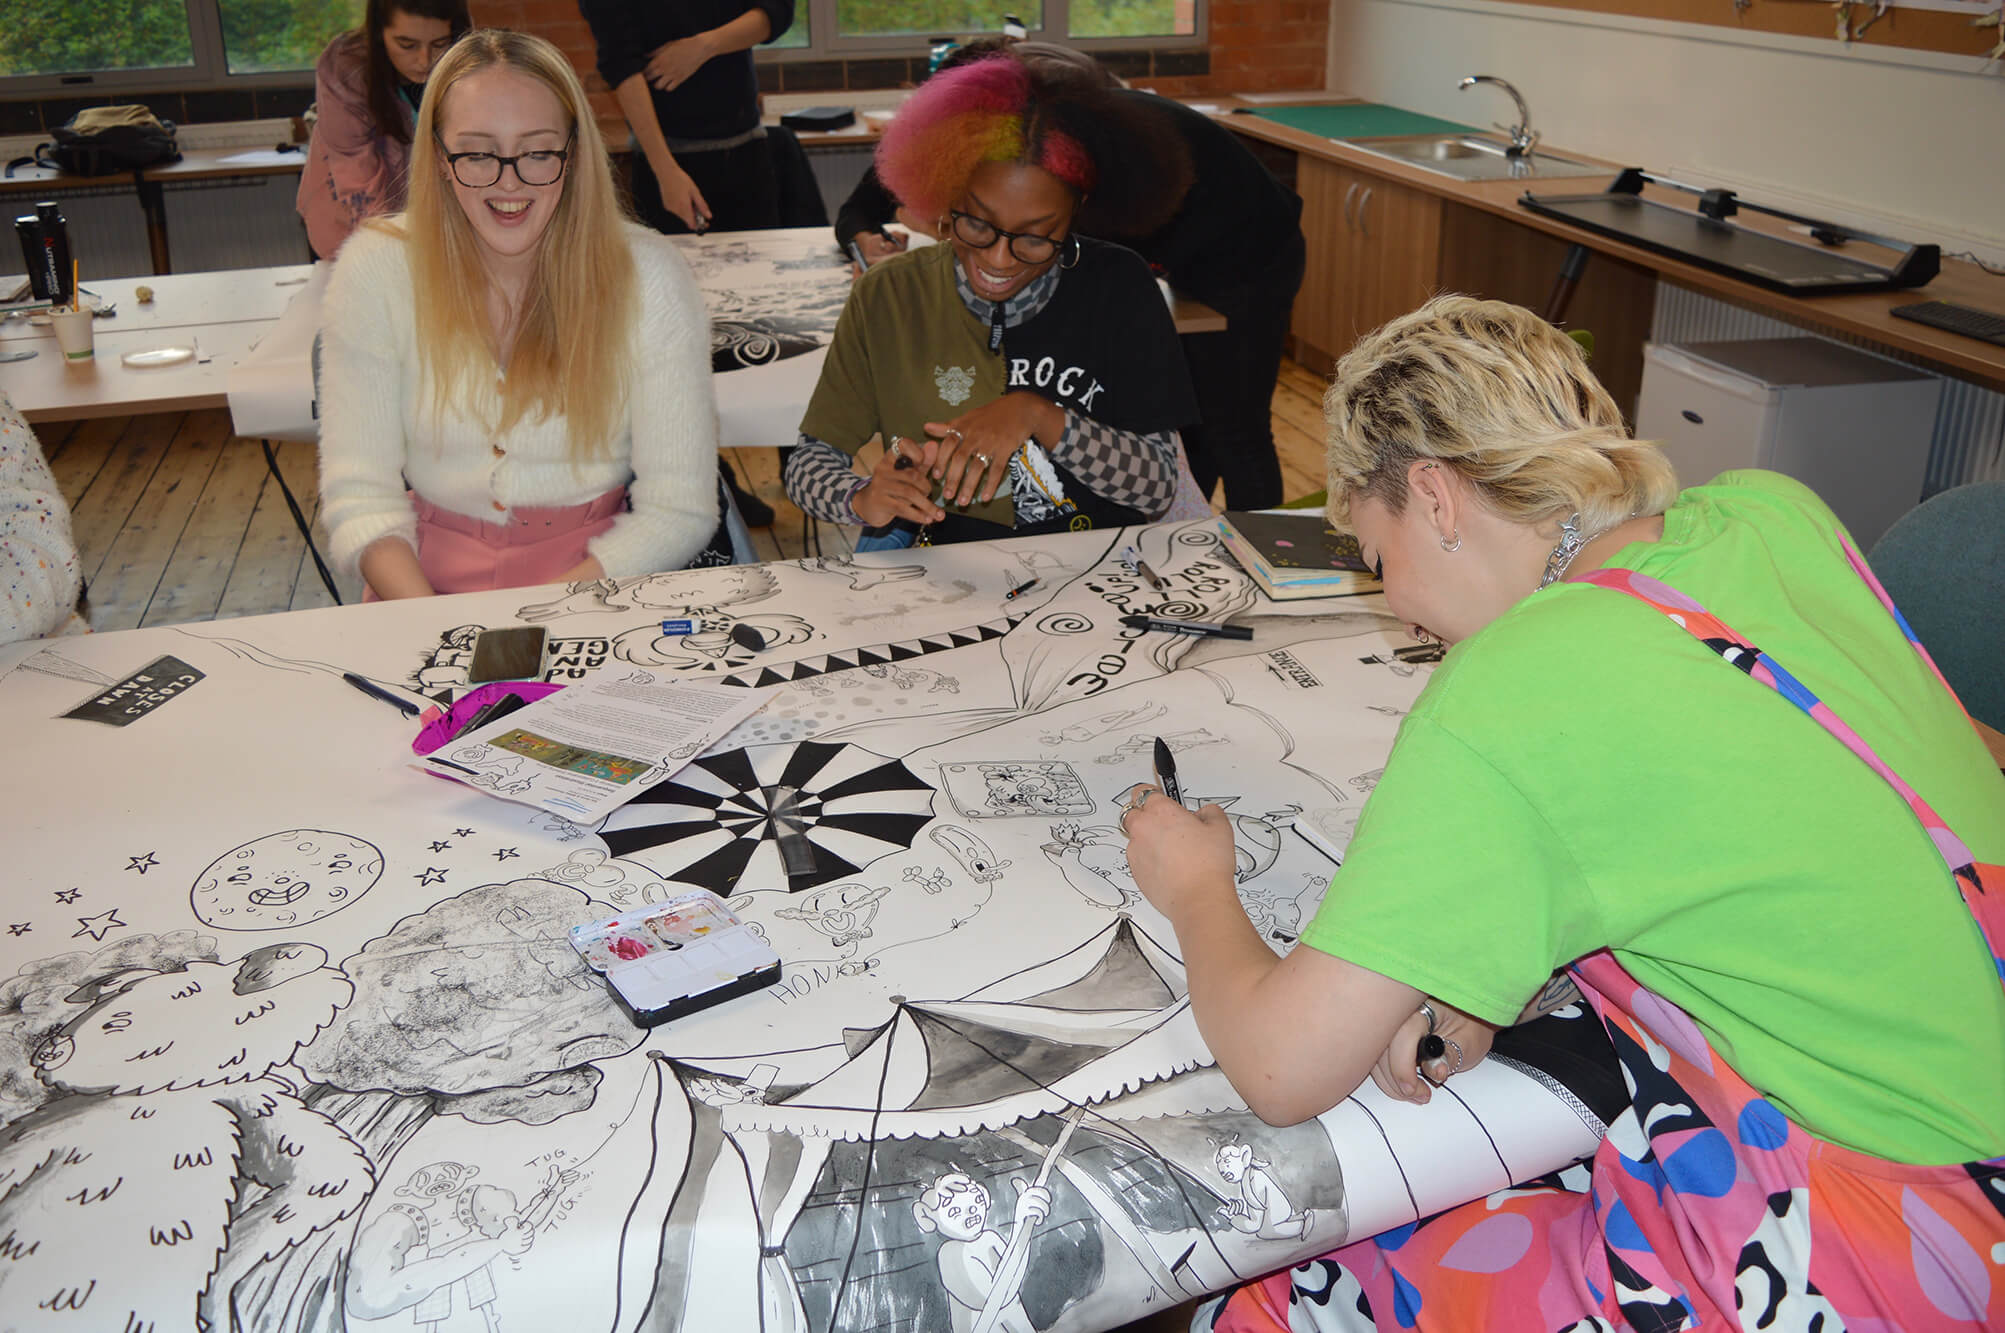 A group of illustration students work on a large black and white drawing